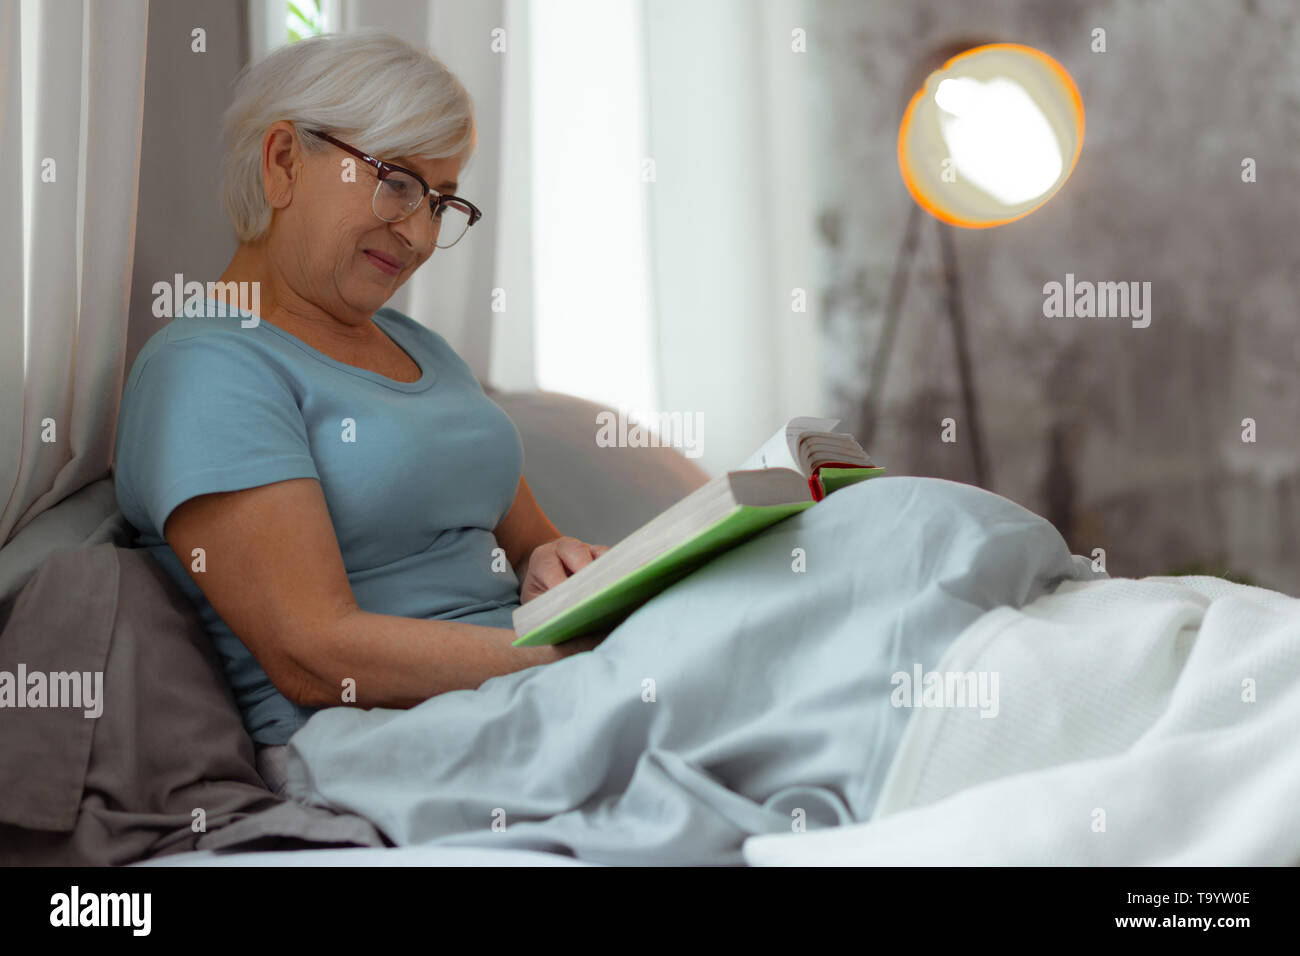 Charming lady lying in bed and engaging in book reading. - Stock Image